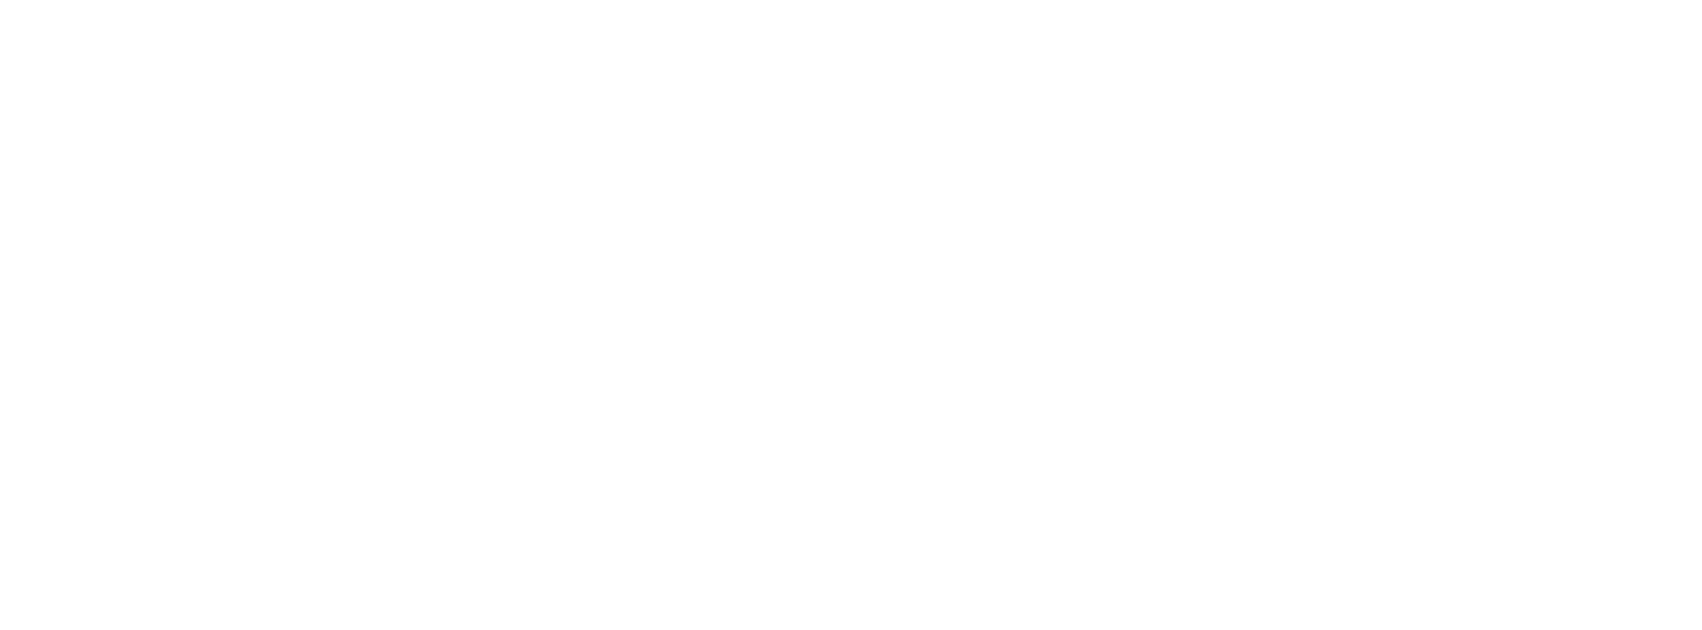 Lasher Design Architecture Firm